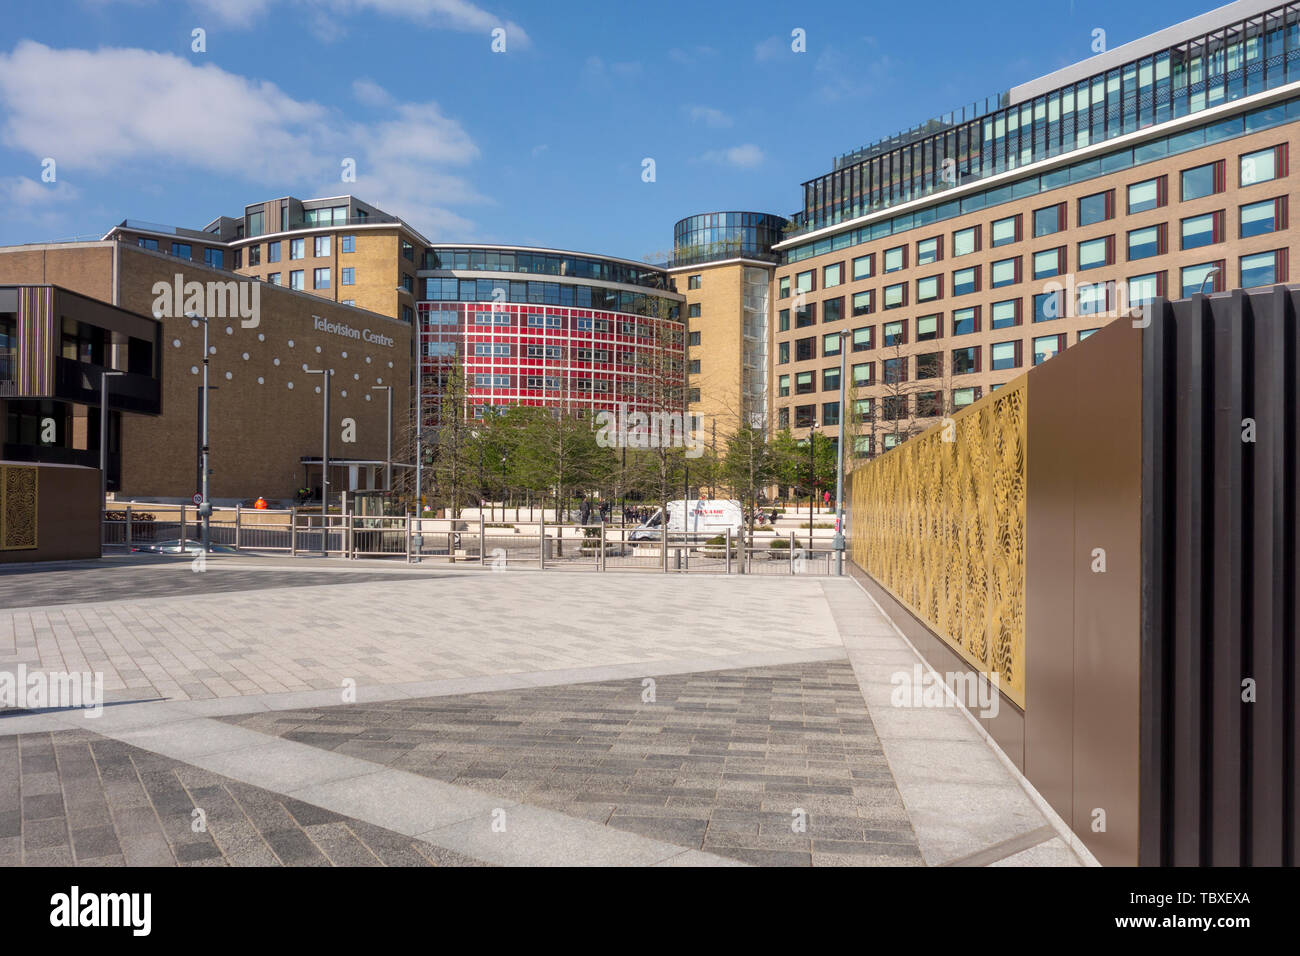 New London development apartments & homes at former BBC Television Centre, White City, London, UK - Stock Image